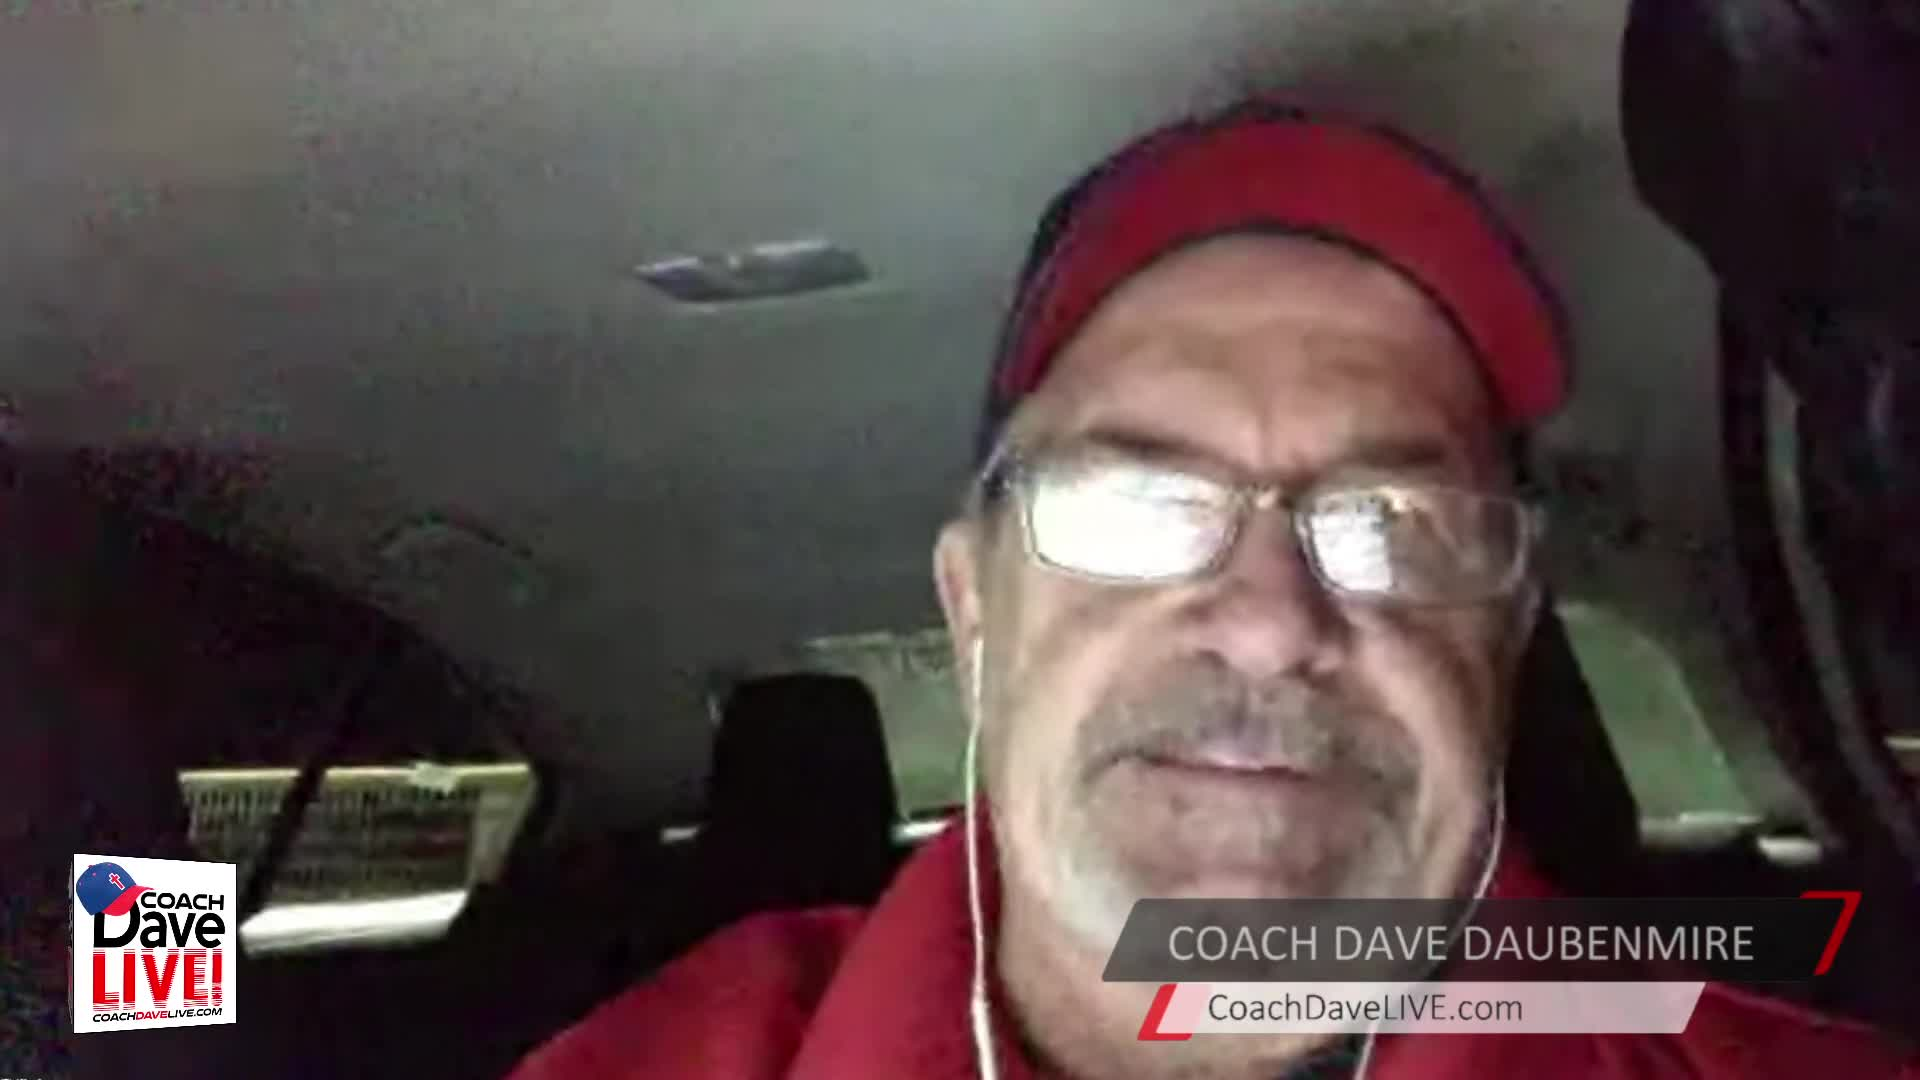 Coach Dave LIVE   02-04-2021   Transgender Tragedies with Guests David Arthur and Mike Heath